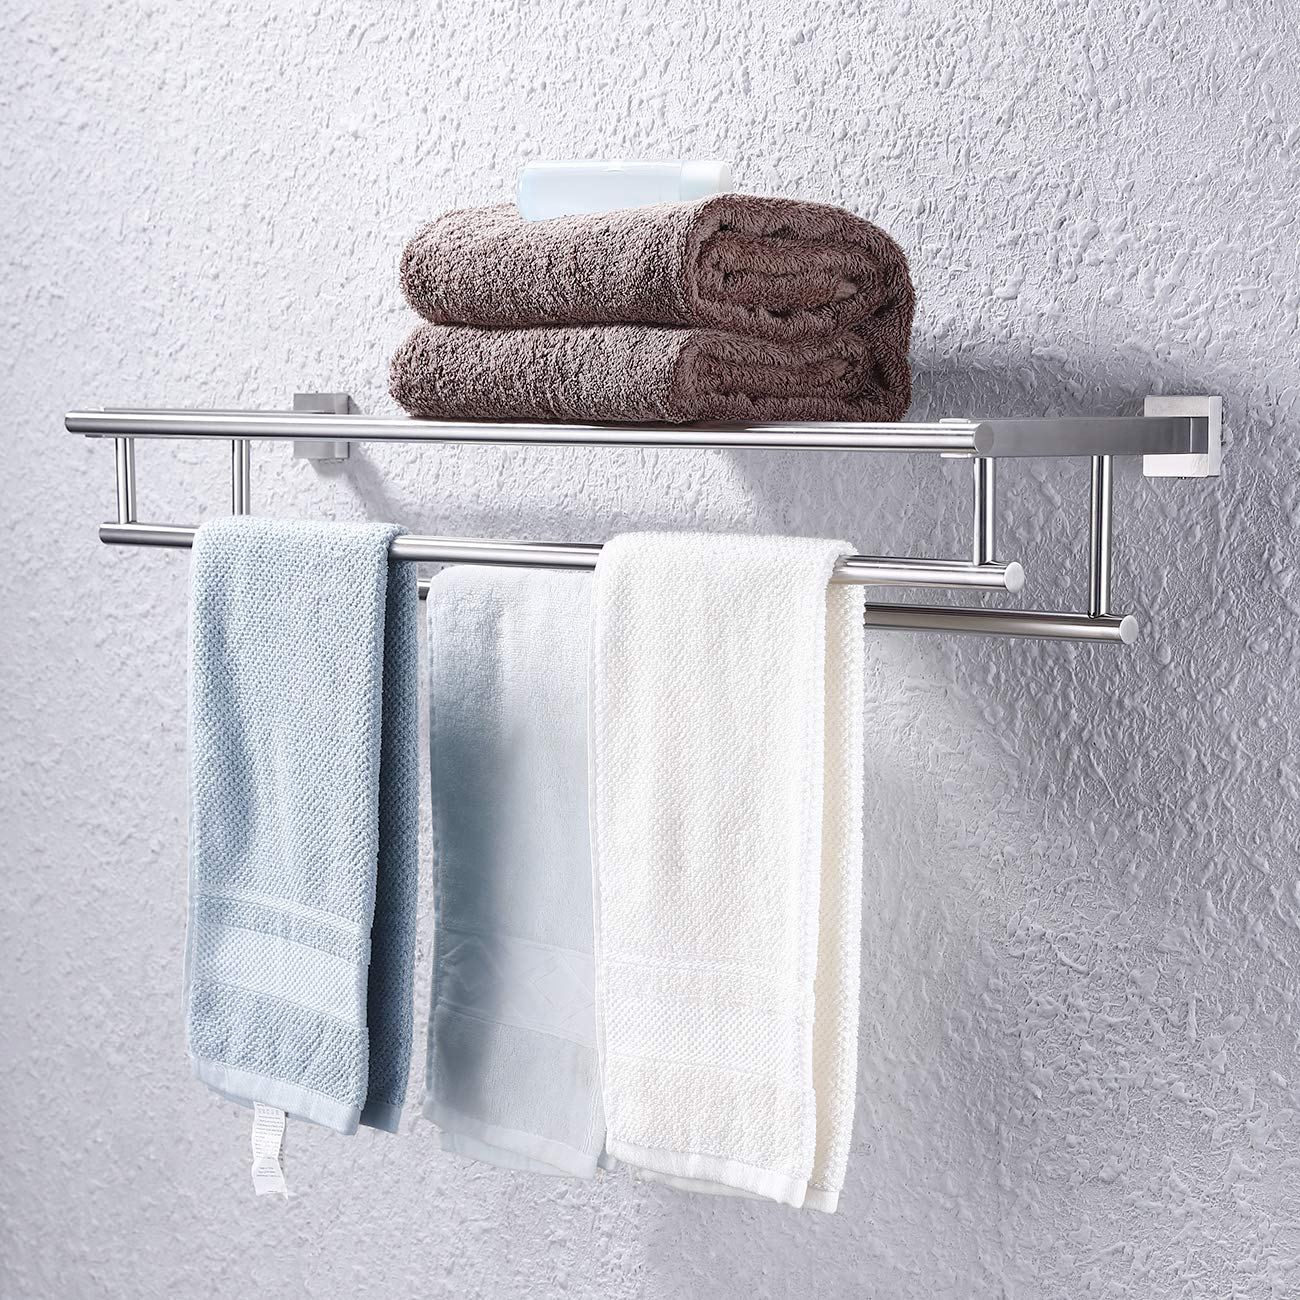 Kes Large Towel Rack A2112S30-2 KES Home Shower Organizer Modern Square Style Wall Mount Brushed Finish 30 Inch Stainless Steel Towel Shelf with Two Bar